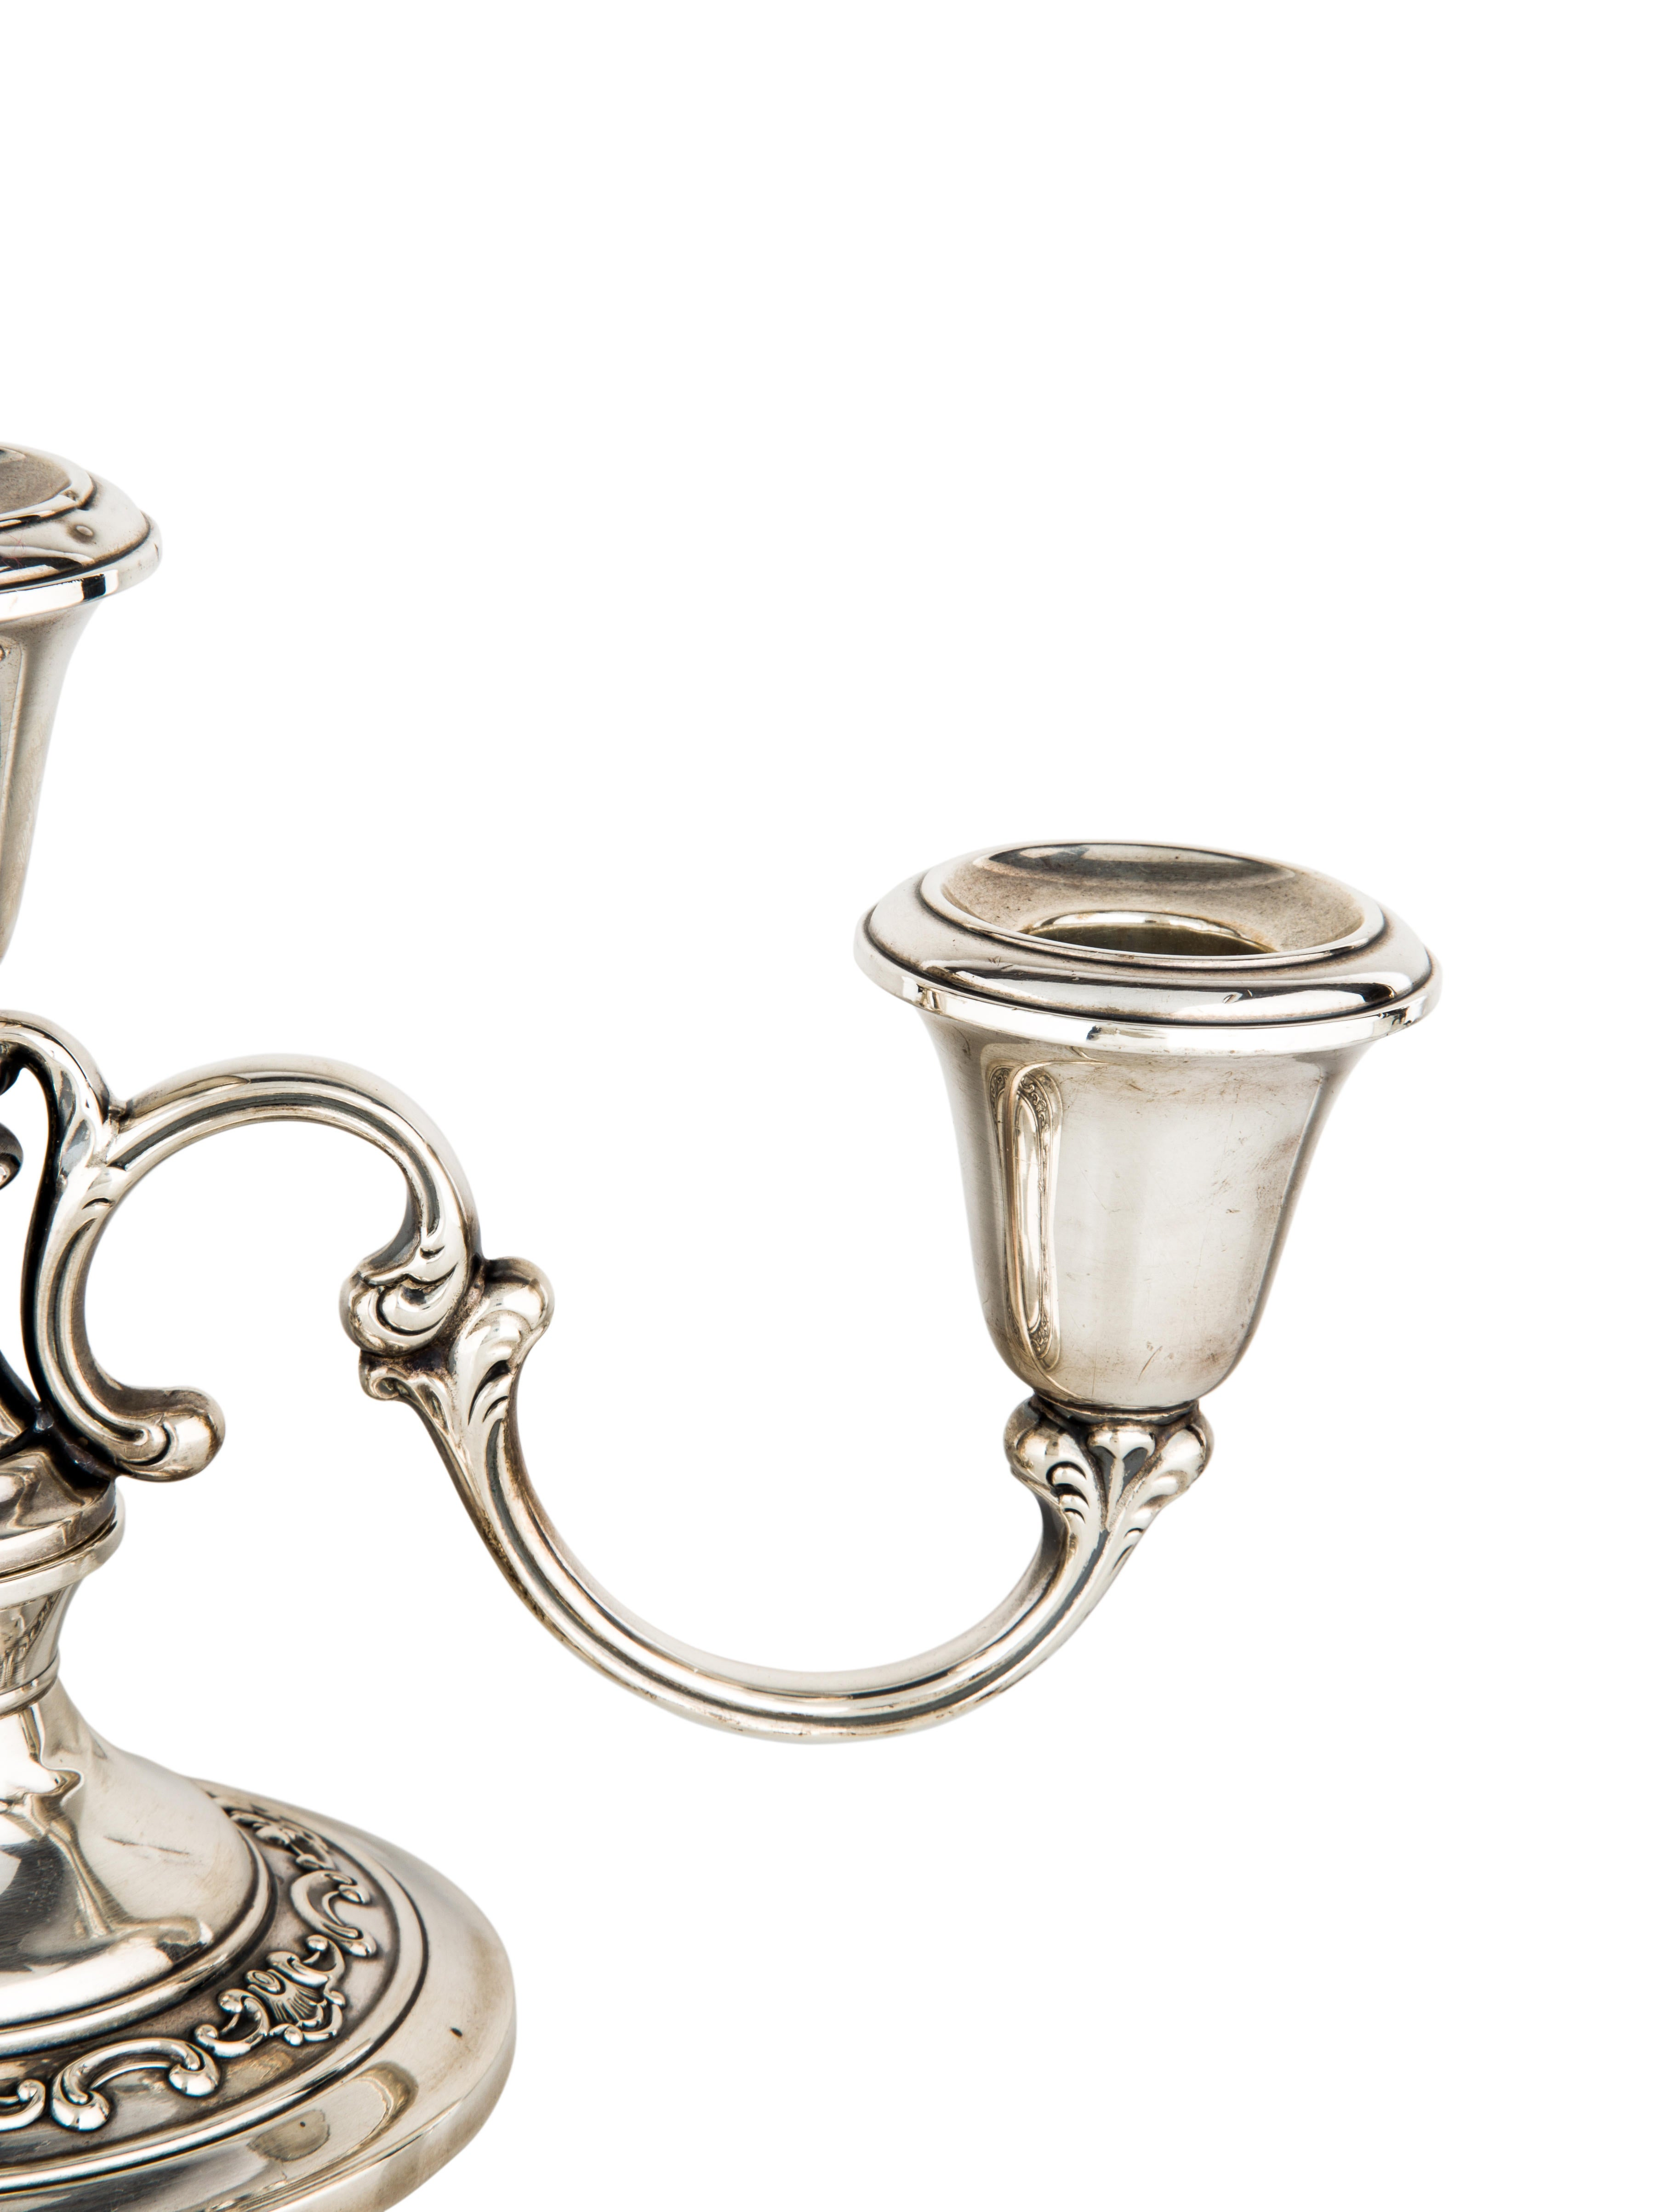 Gorham pair of sterling silver strasbourg candelabra for Artistic accents genuine silver decoration